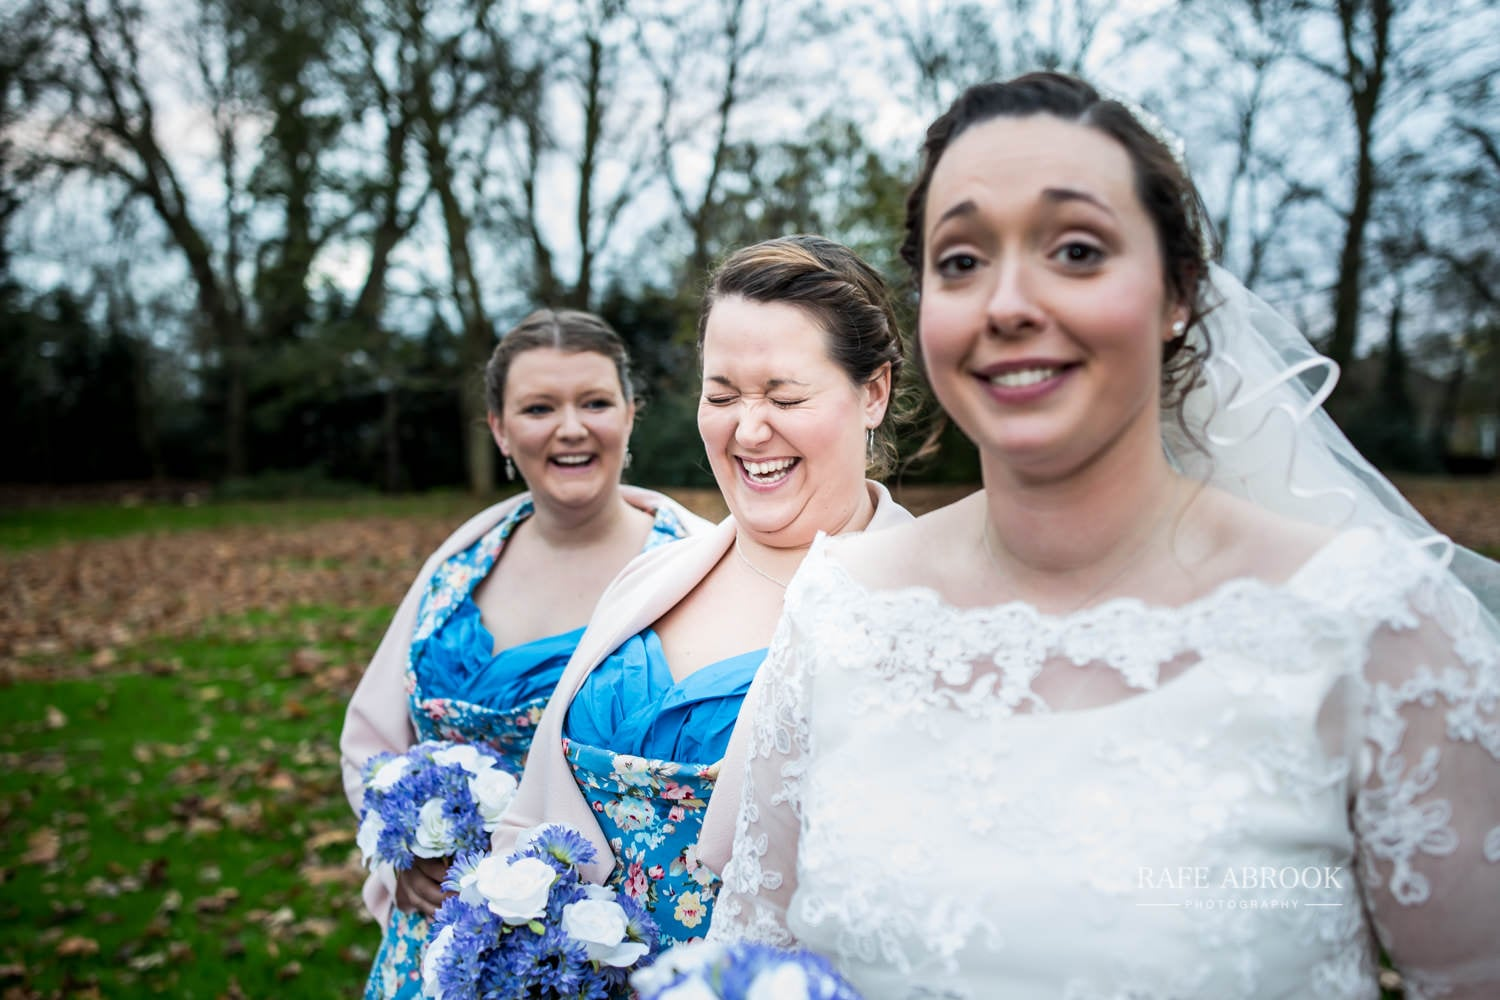 woodland manor hotel clapham bedford wedding hertfordshire wedding photographer-1144.jpg